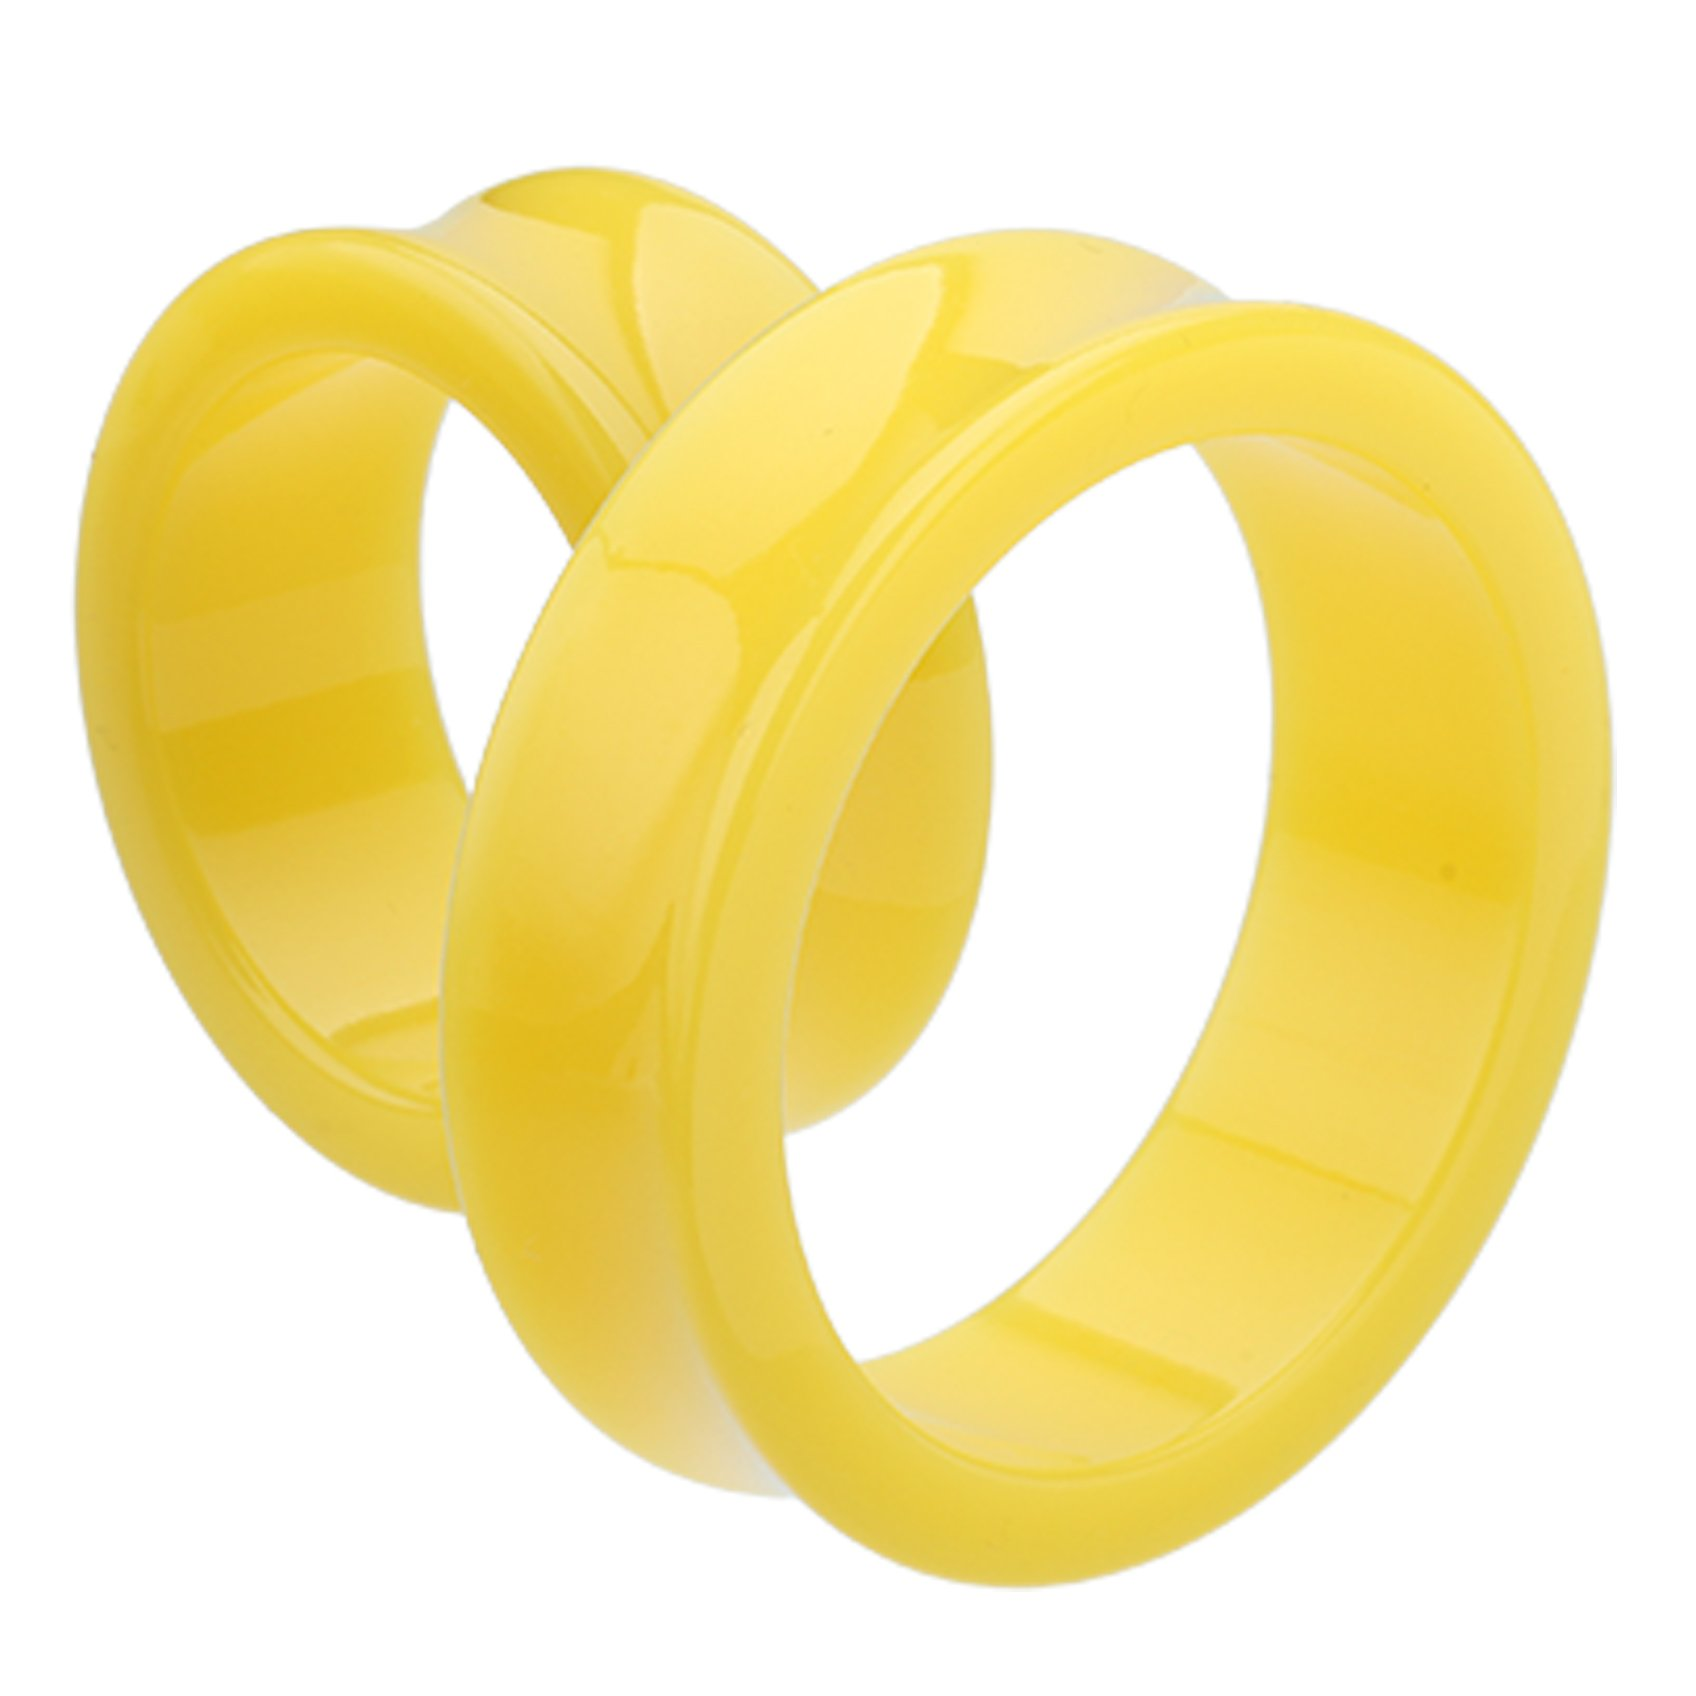 Supersize Neon Colored Acrylic Double Flared Ear Gauge Tunnel Plug - 1-1/2'' (38mm) - Yellow - Sold as a Pair by Cosmic - Plugs